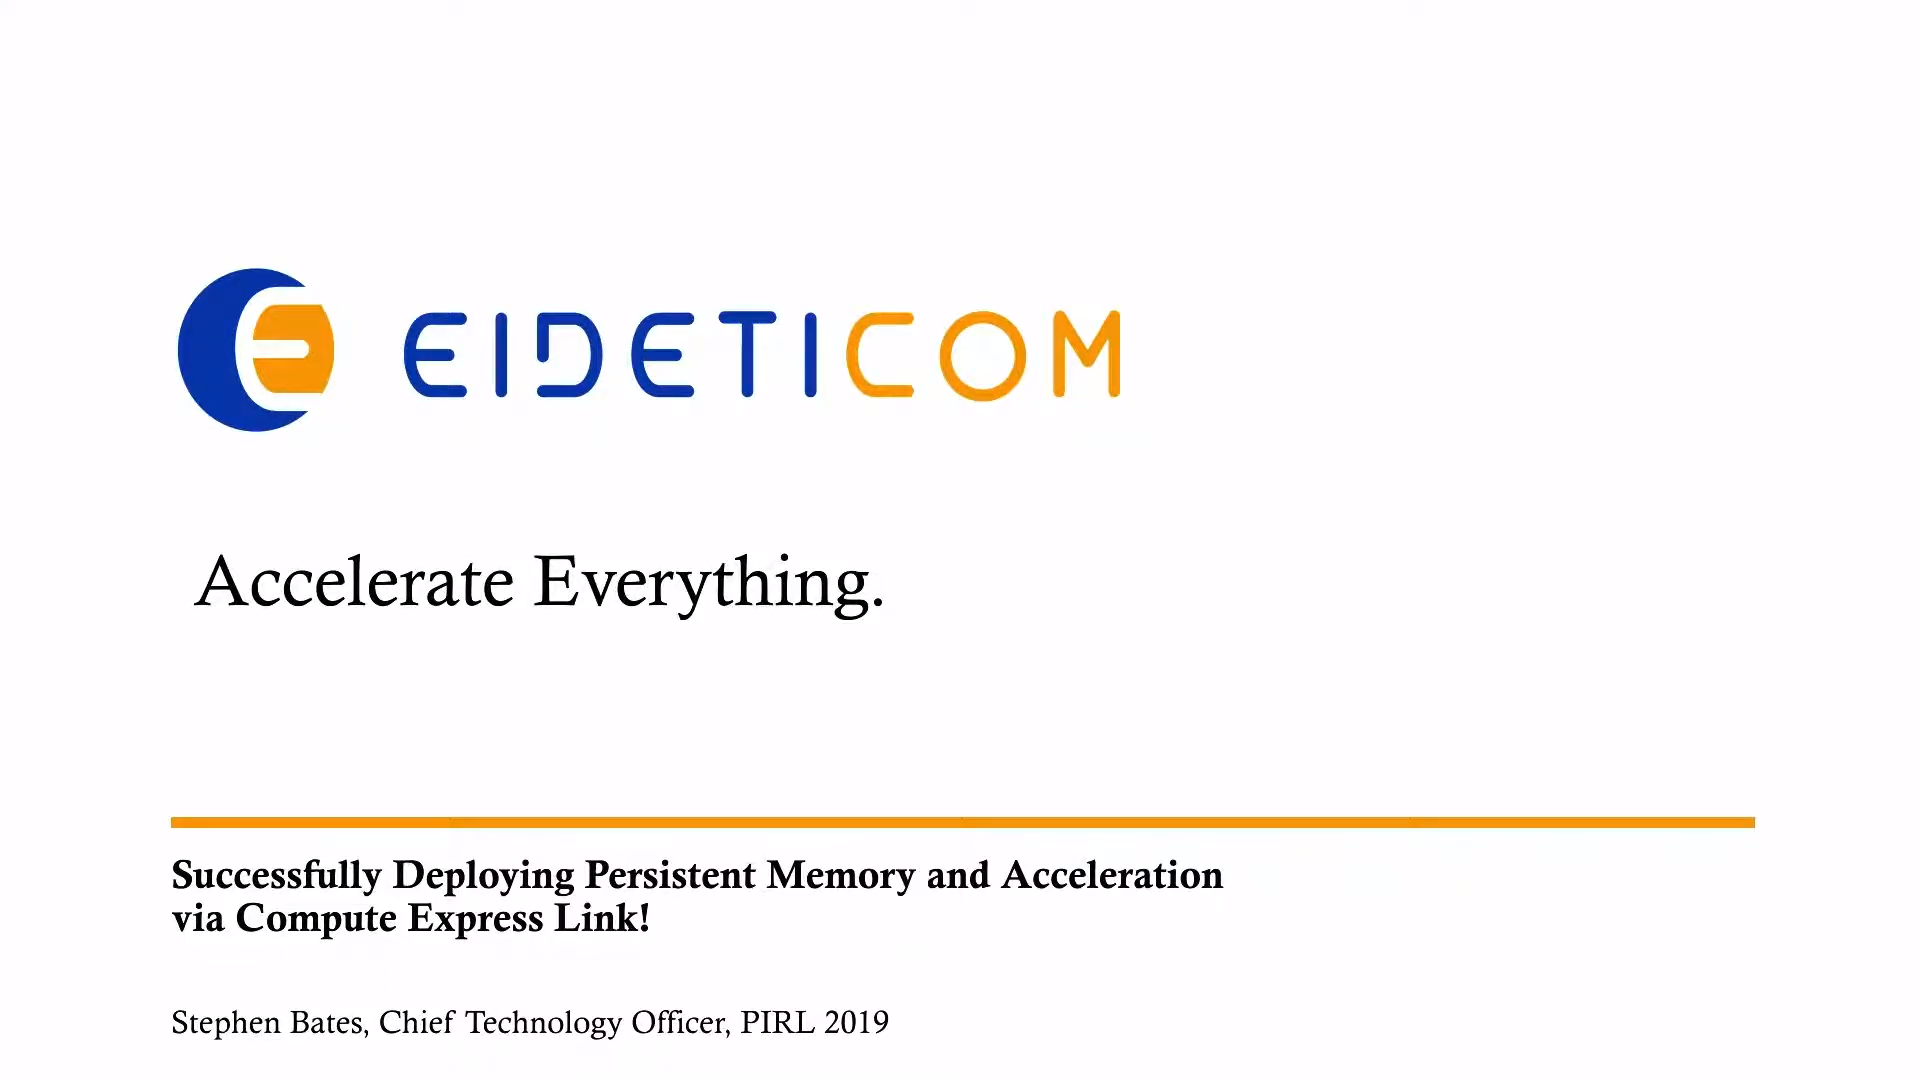 PIRL 2019: Successfully Deploying Persistent Memory and Acceleration via Compute Express Link